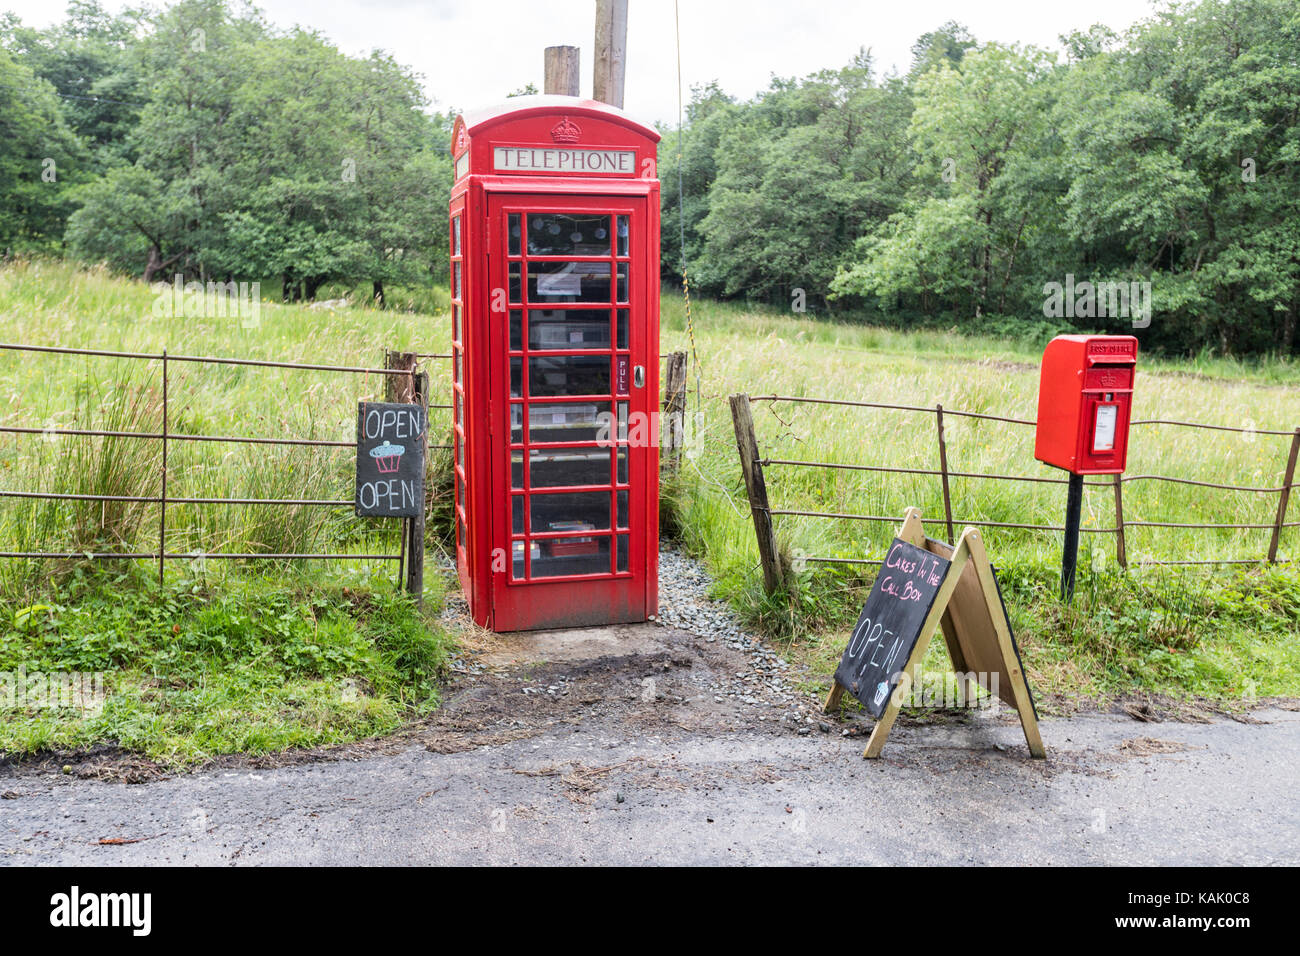 telephone-red-box-uses-to-sell-cakes-sel